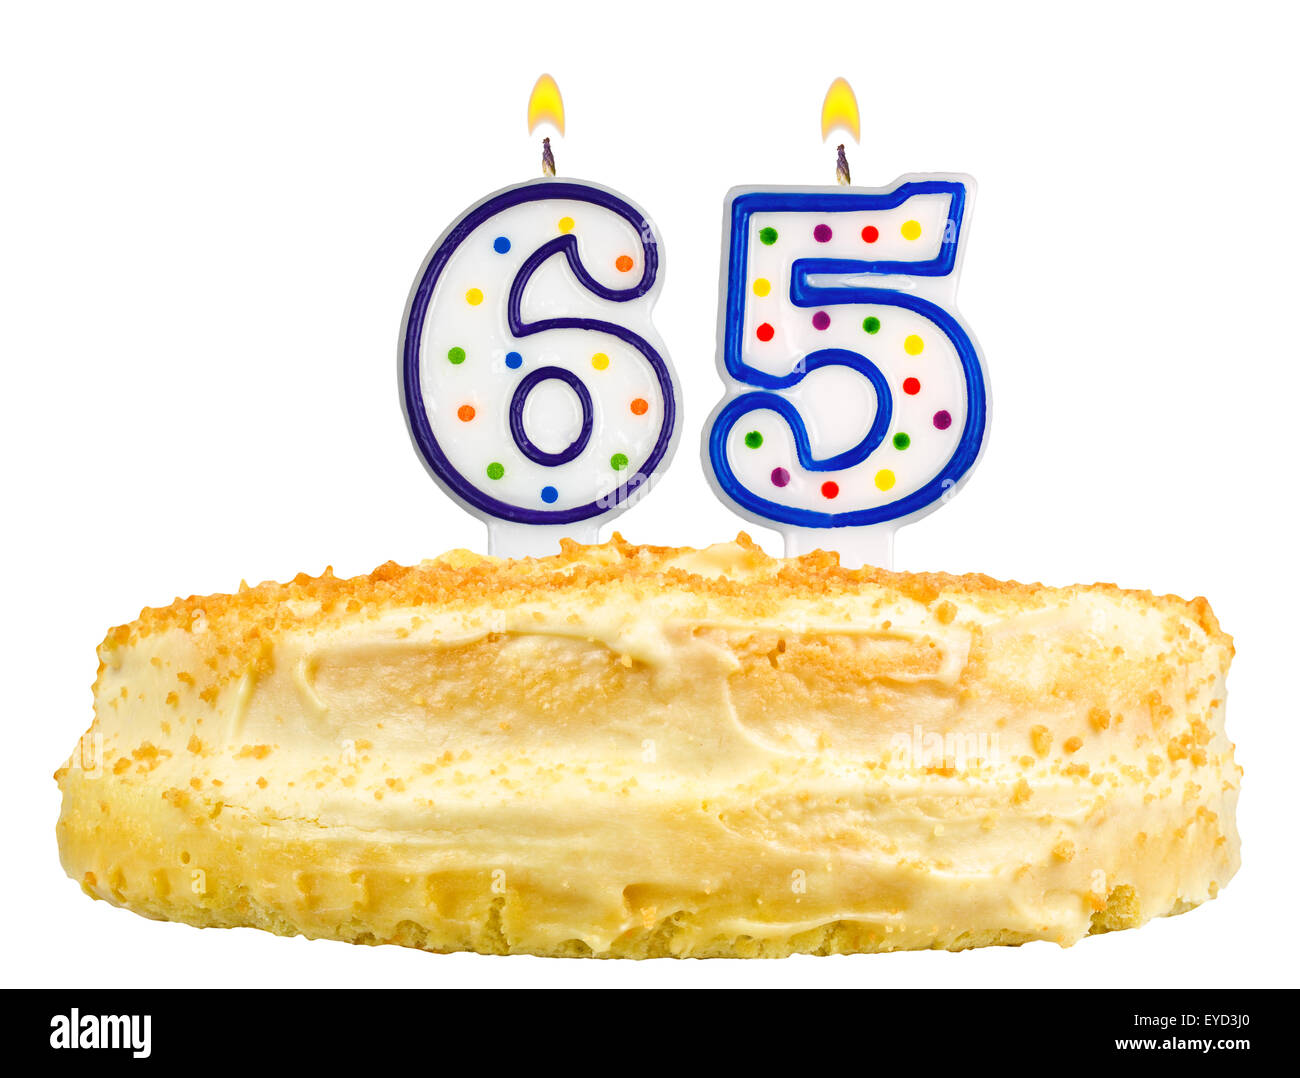 Birthday Cake With Candles Number Sixty Five Isolated On White Background